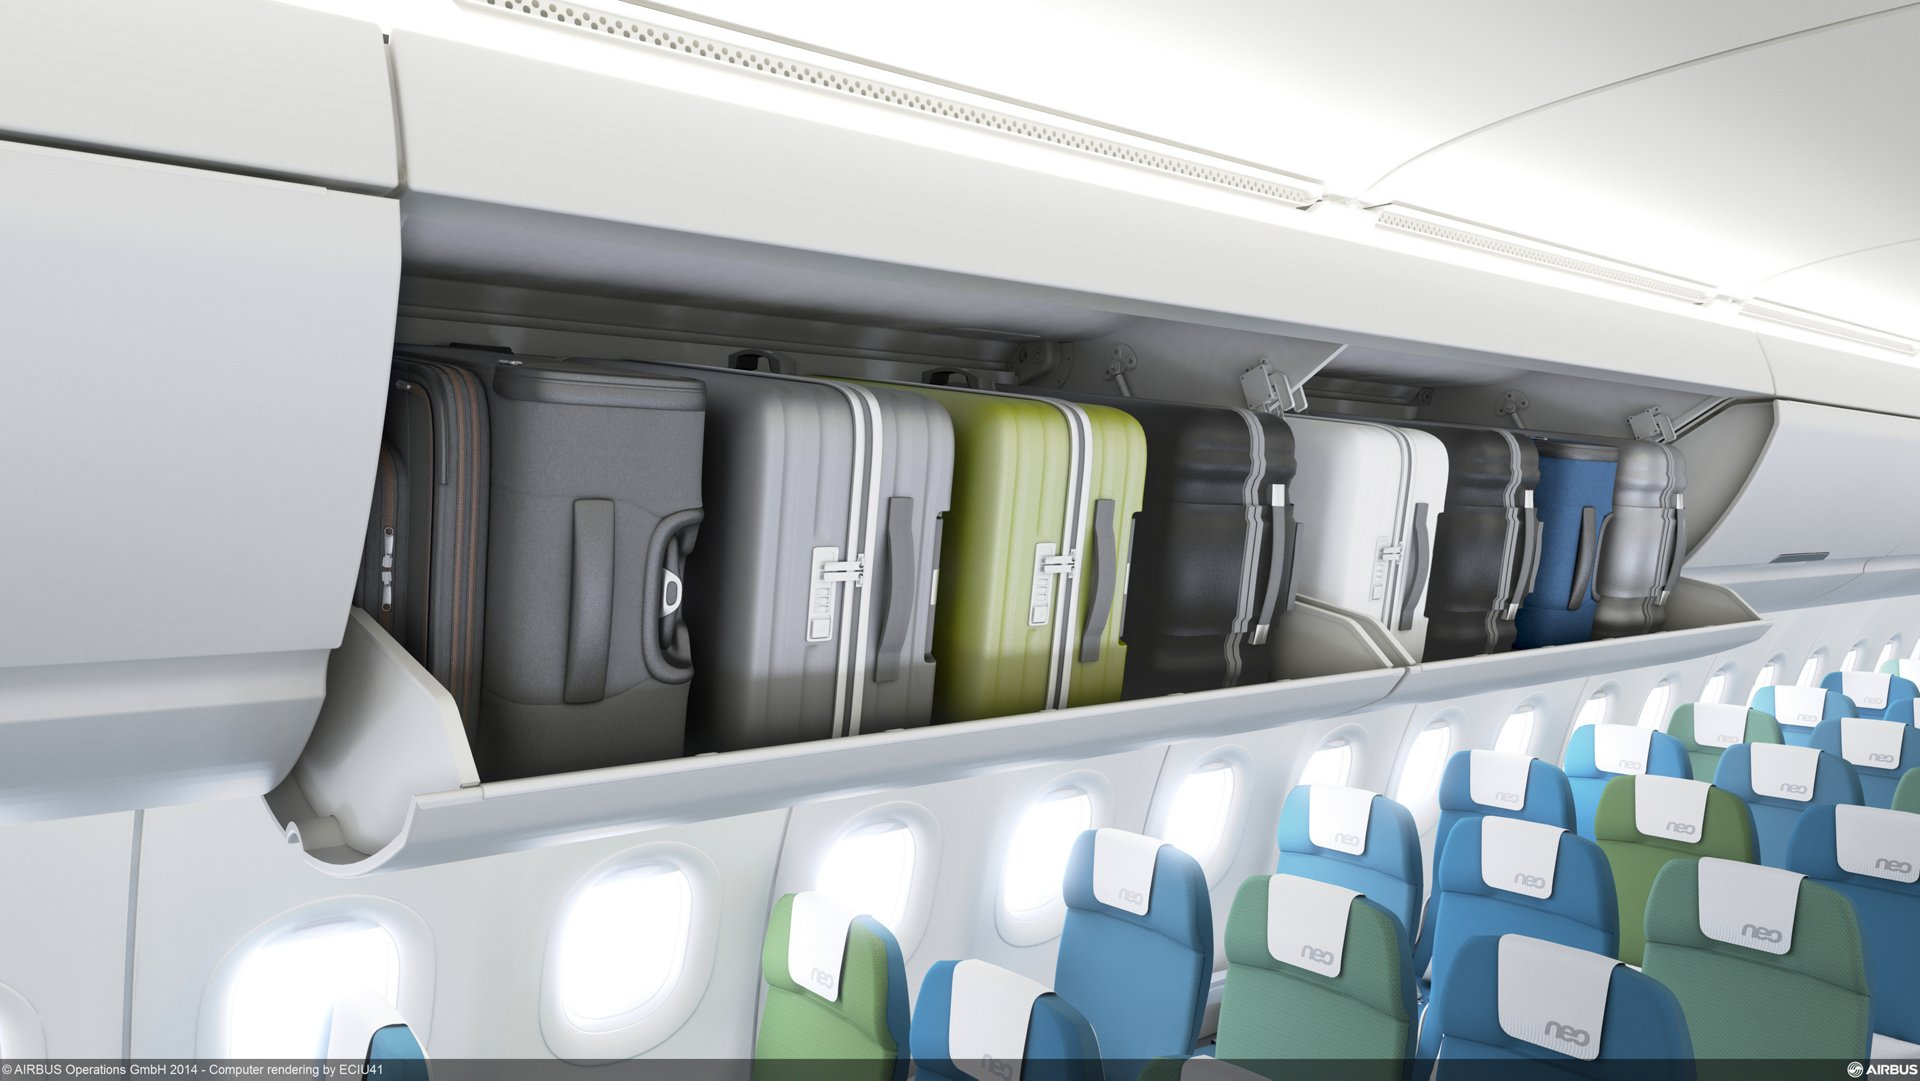 Airbus launches new pivoting overhead carry-on stowage bins